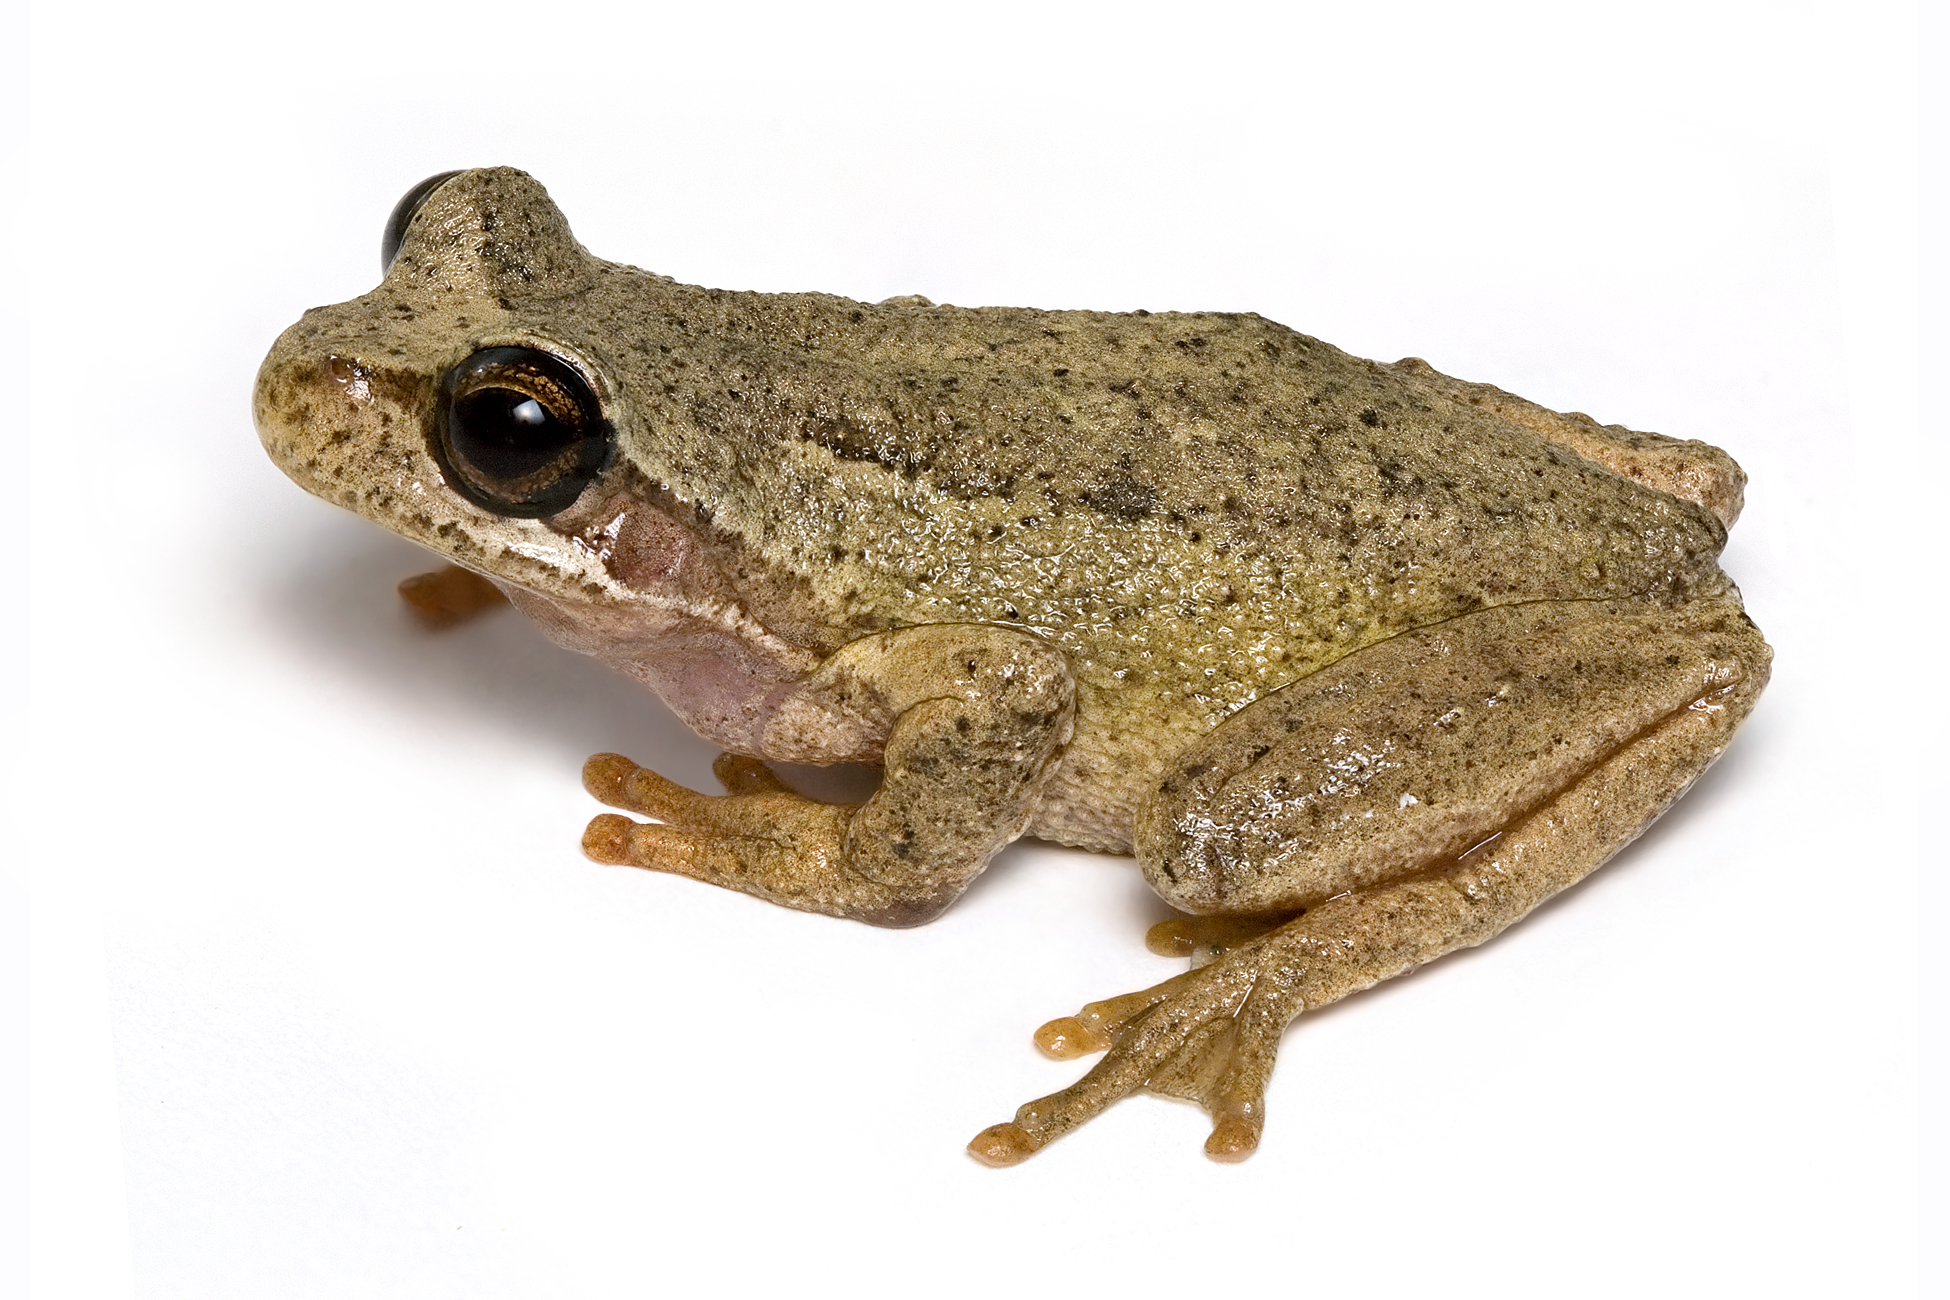 Frogs france and false philosophy part 1 this blog is rated browntreefrog2 biocorpaavc Images